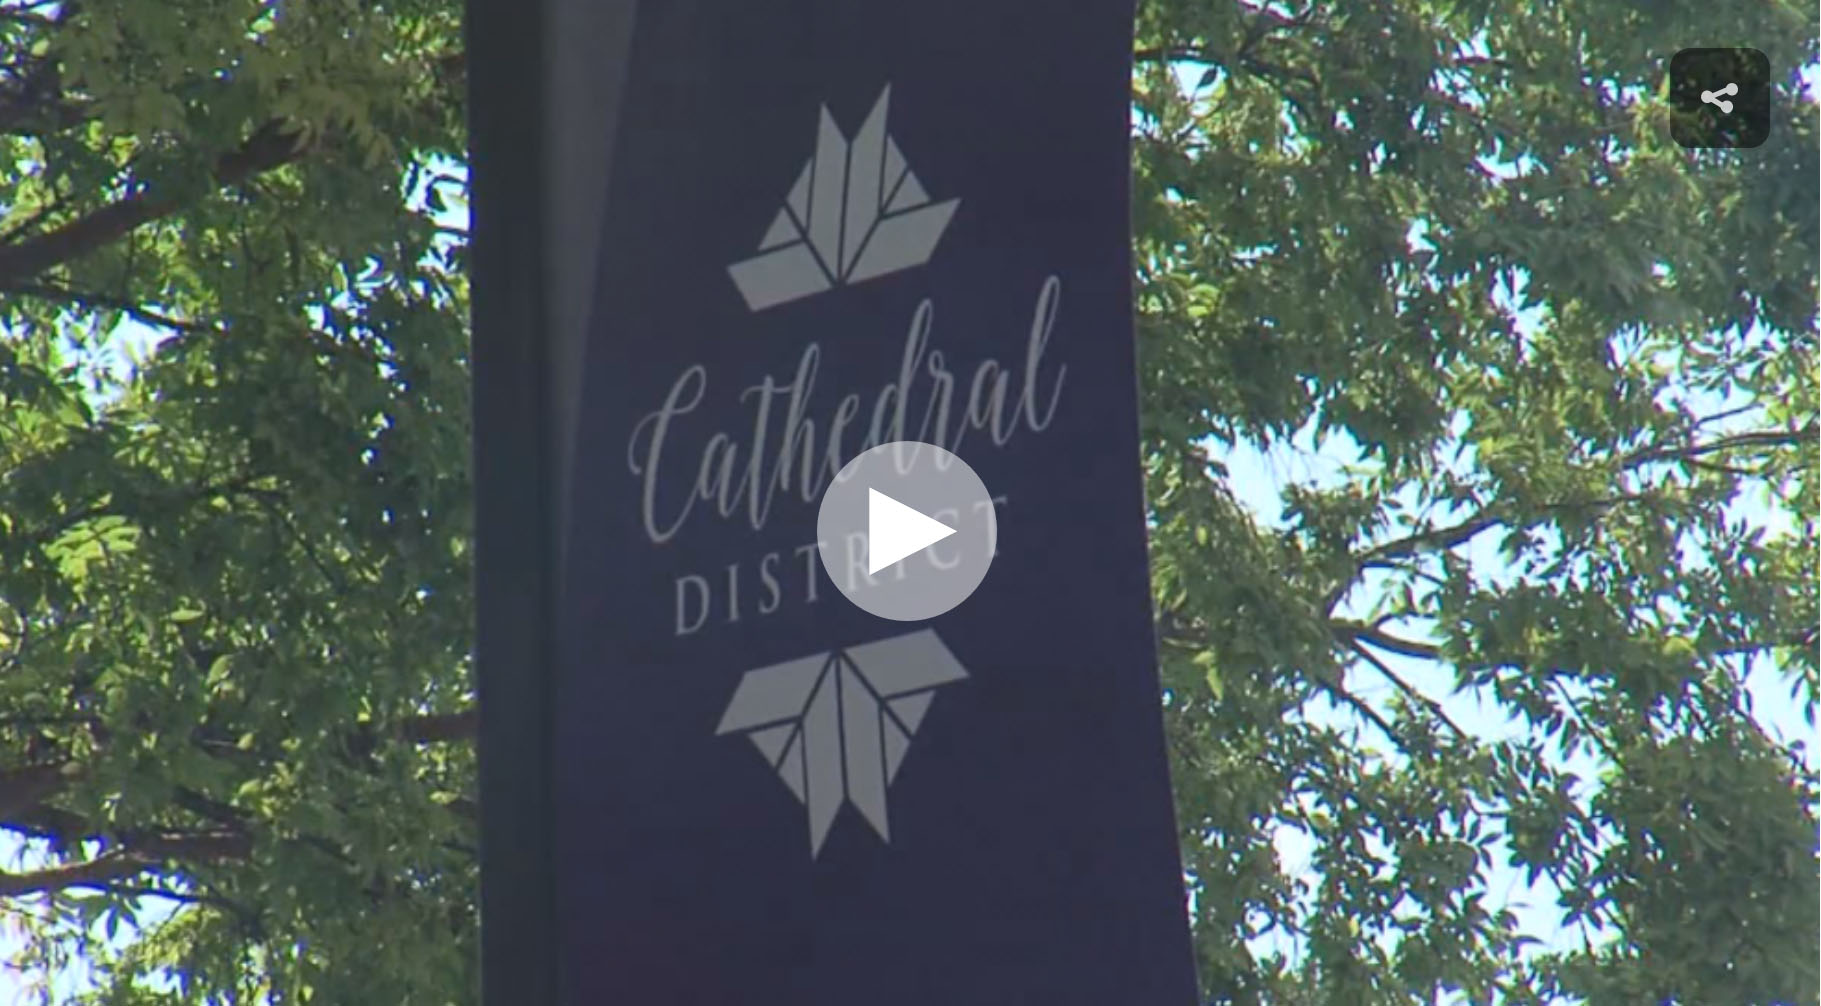 'Cathedral District' launches in downtown Tulsa